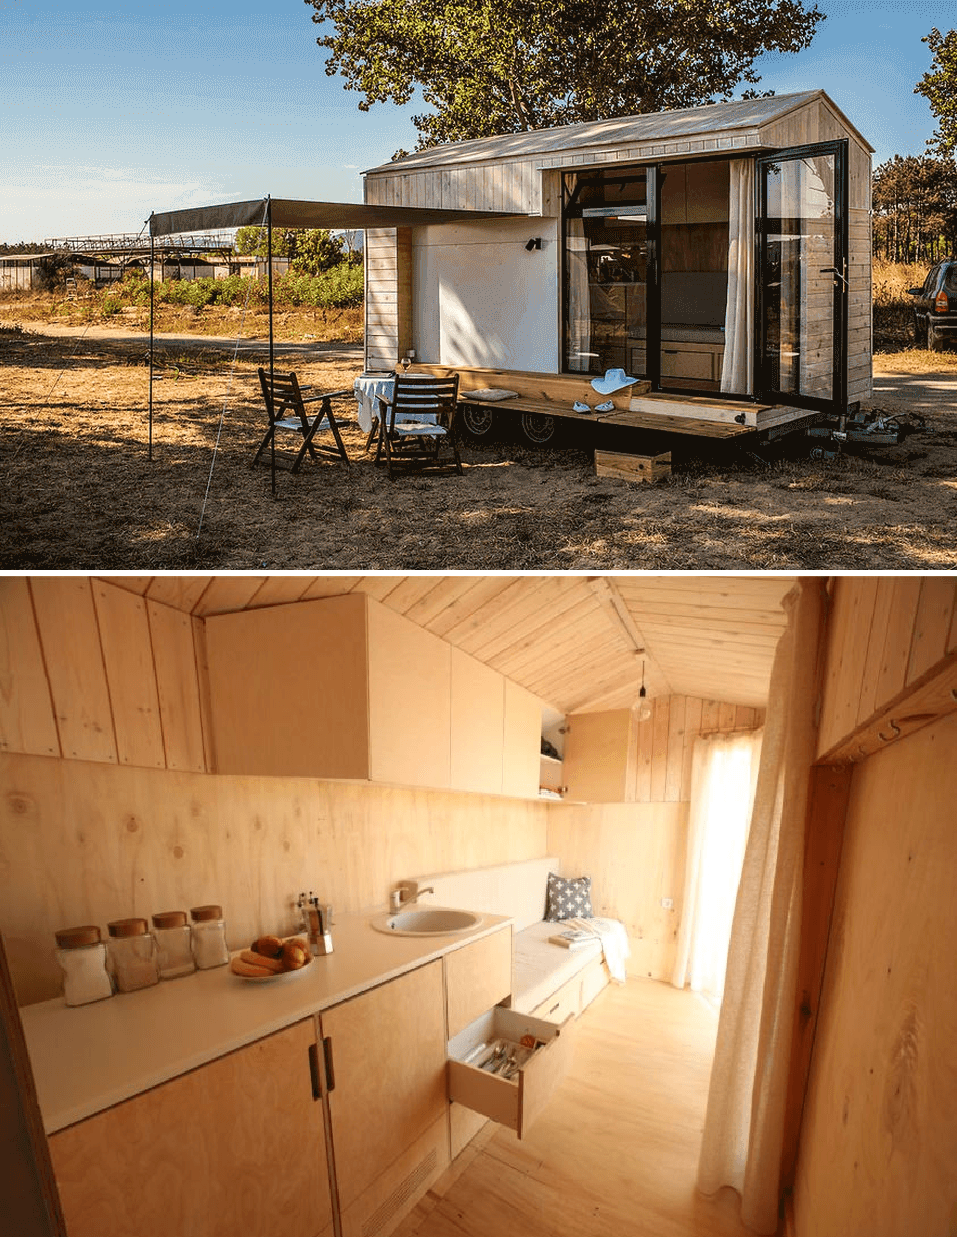 18 Tiny Houses On Wheels Design Ideas To Clone Small House Tips